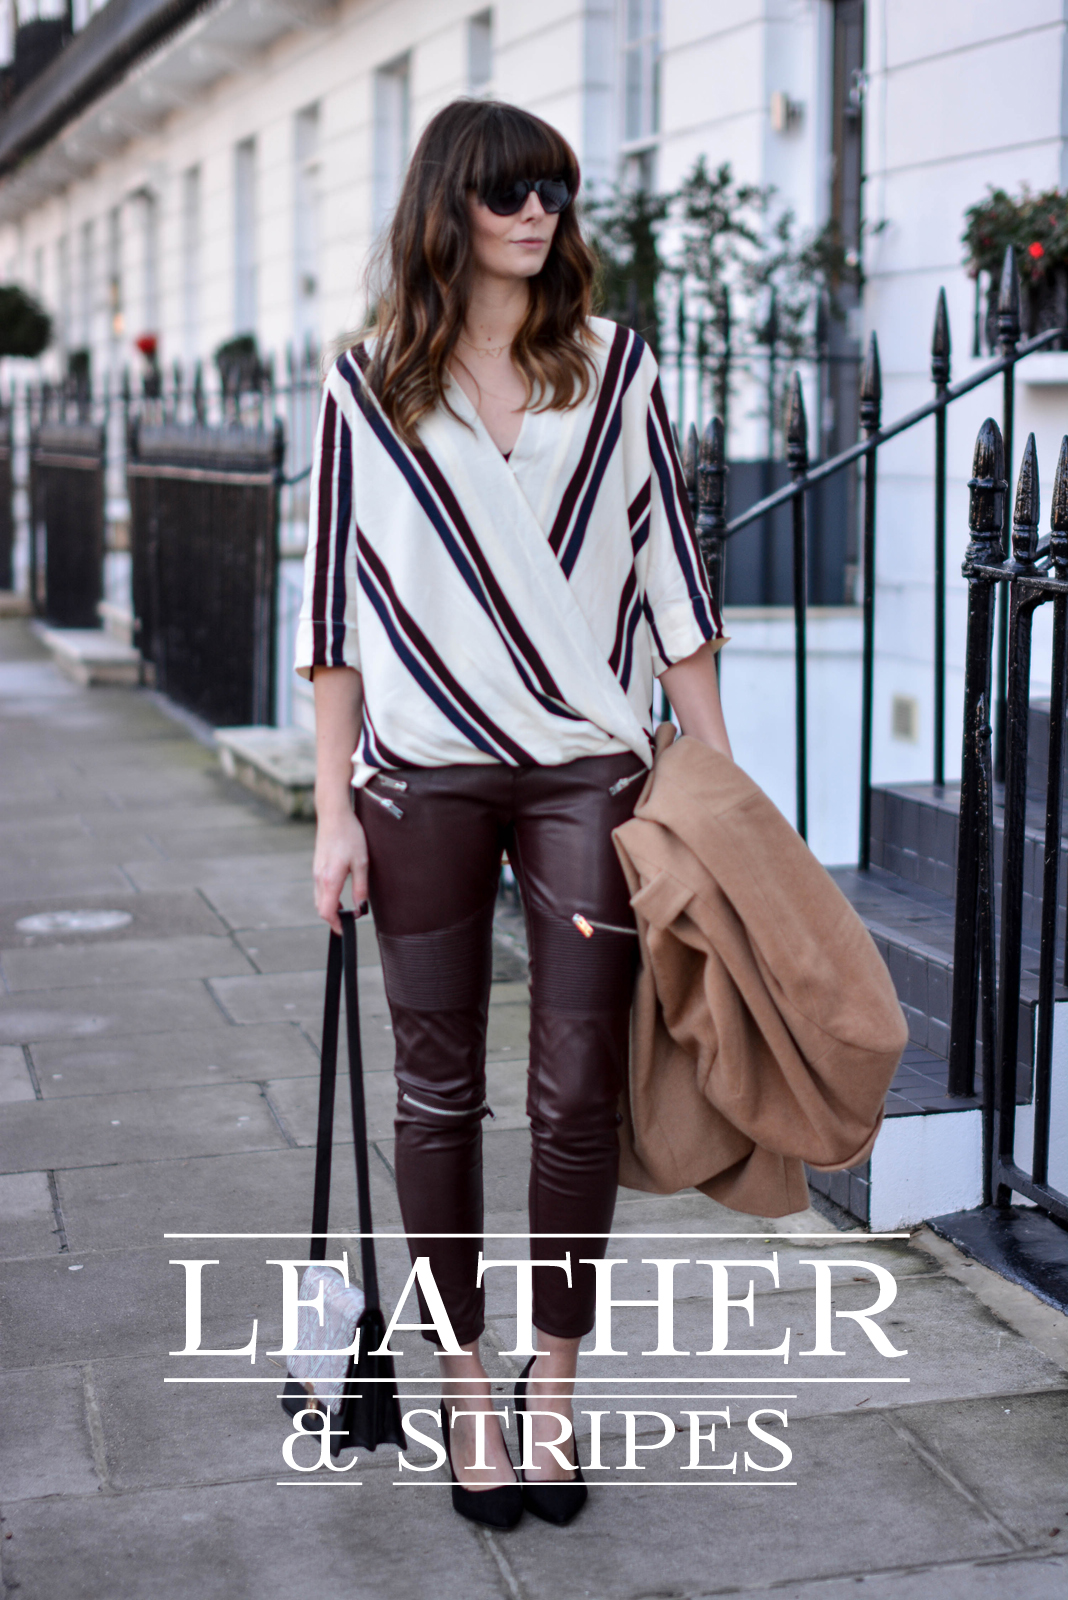 EJSTYLE - Topshop stripe drapped shirt top, River Island camel coat, Zara burgundy biker trousers faux leather, Snakeskin shoulder bag, OOTD, fashion blogger, chic outfit